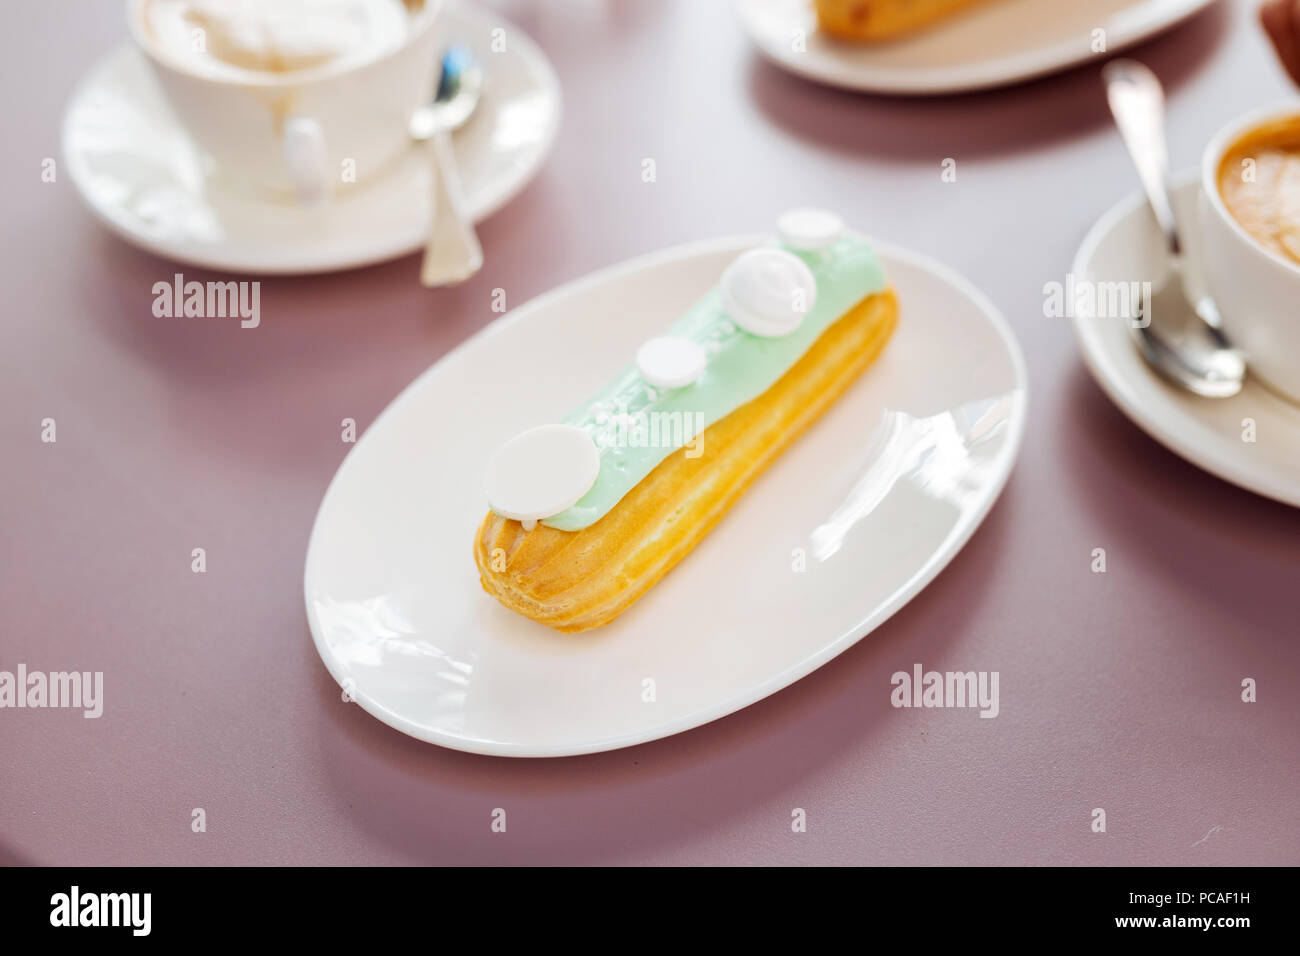 Amazing eclair resting on plate Stock Photo